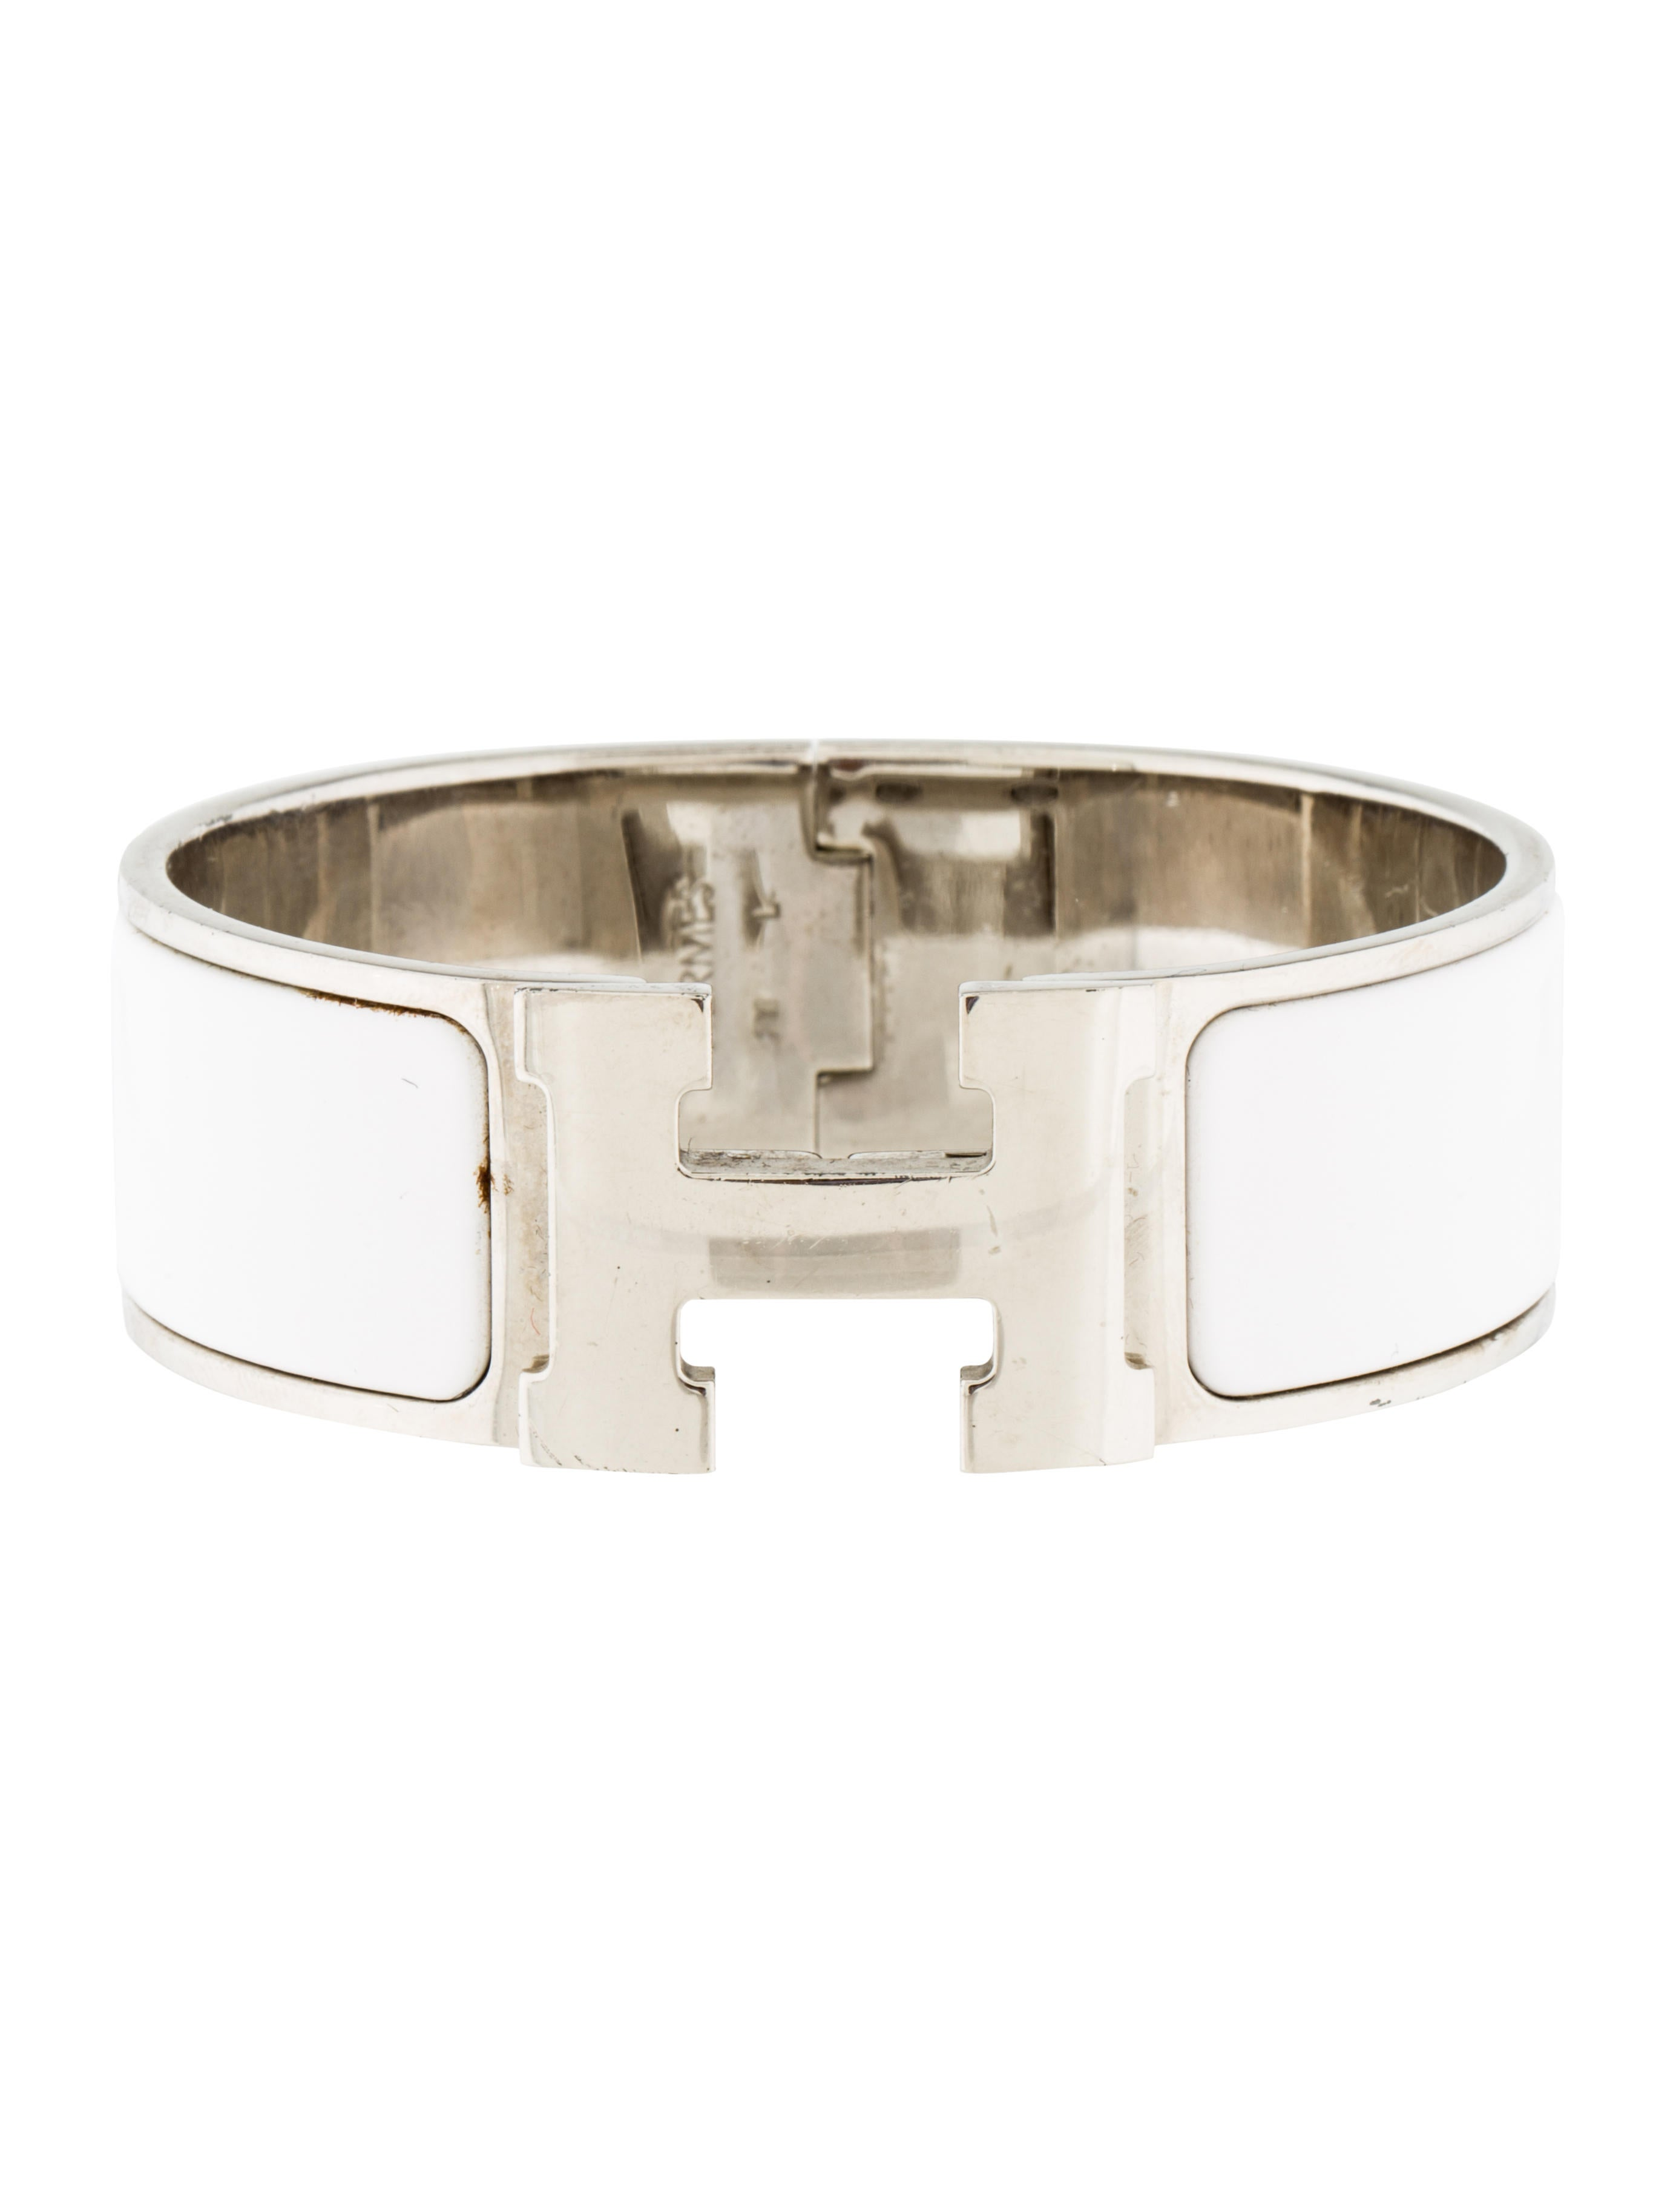 Herm s wide clic clac h bracelet bracelets her92078 the realreal - Dimensions clic clac ...